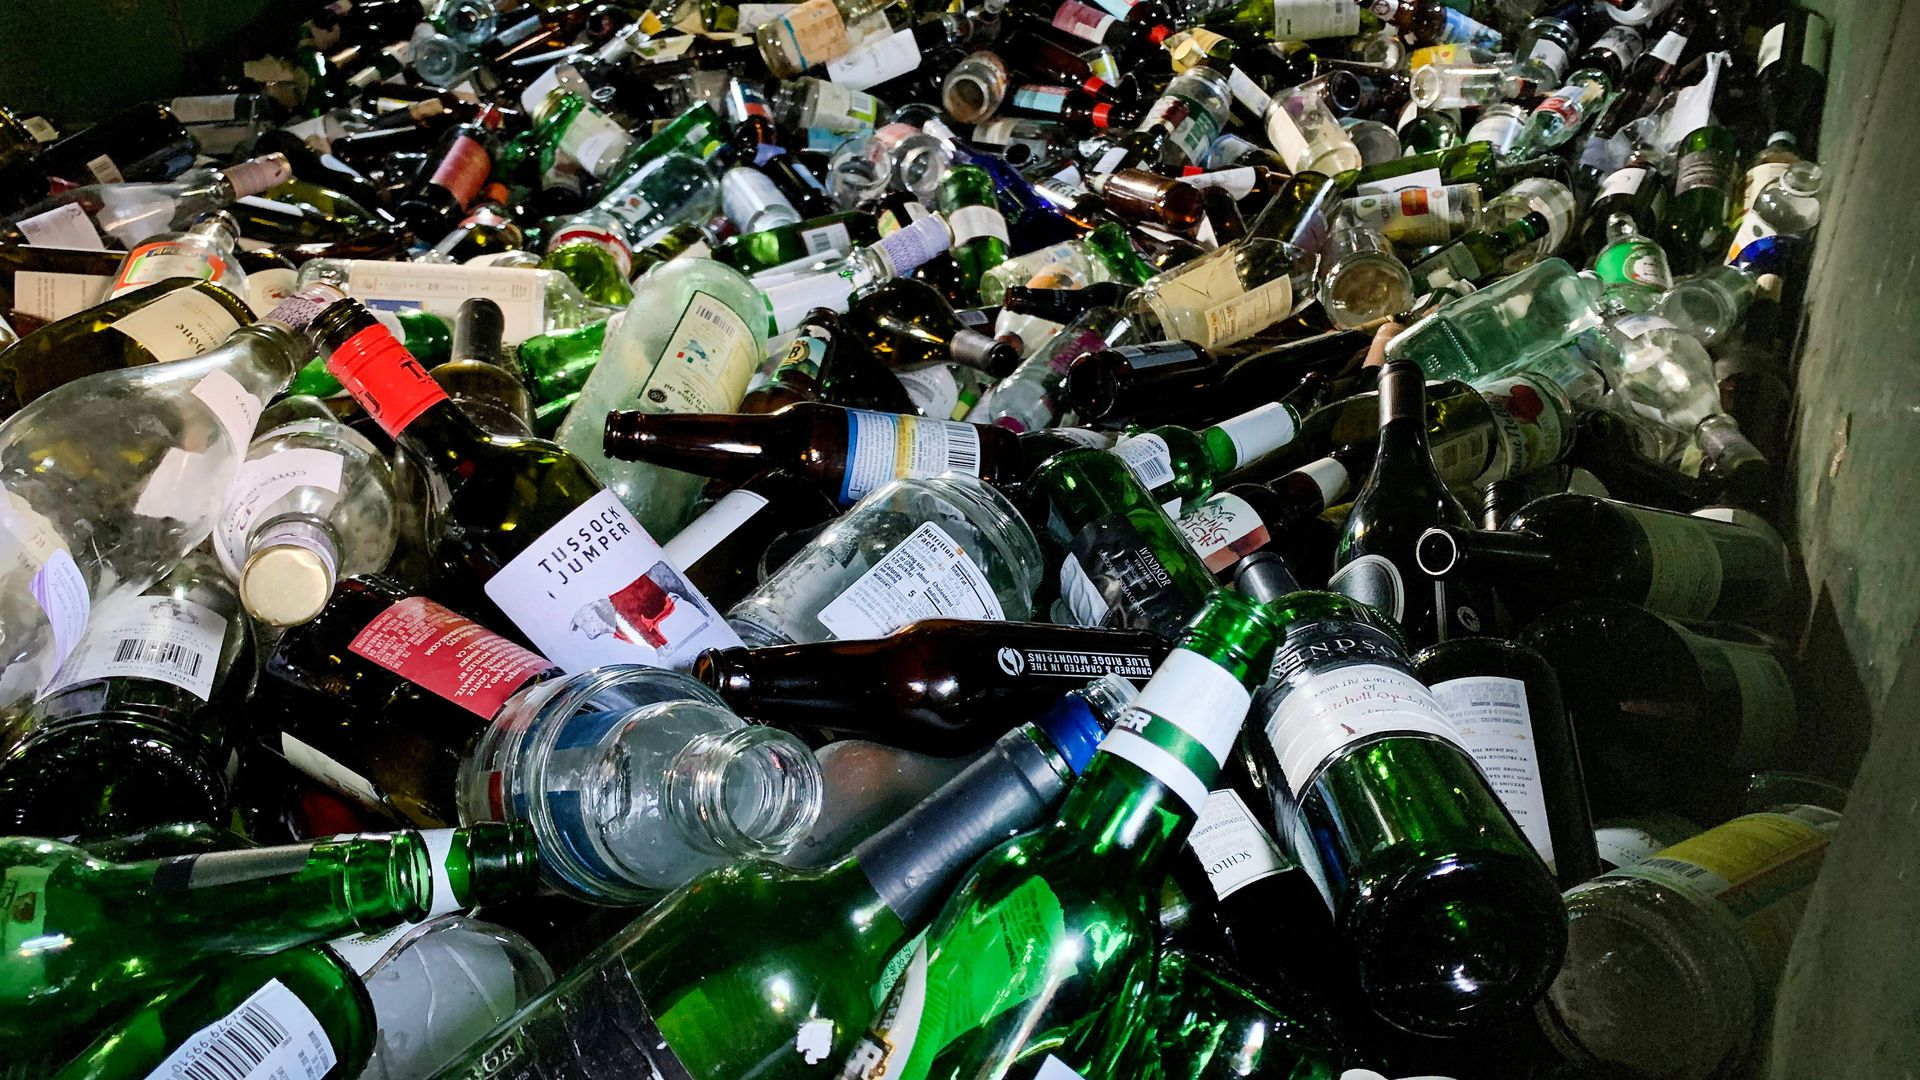 Empty glass bottles including those from wine and beer